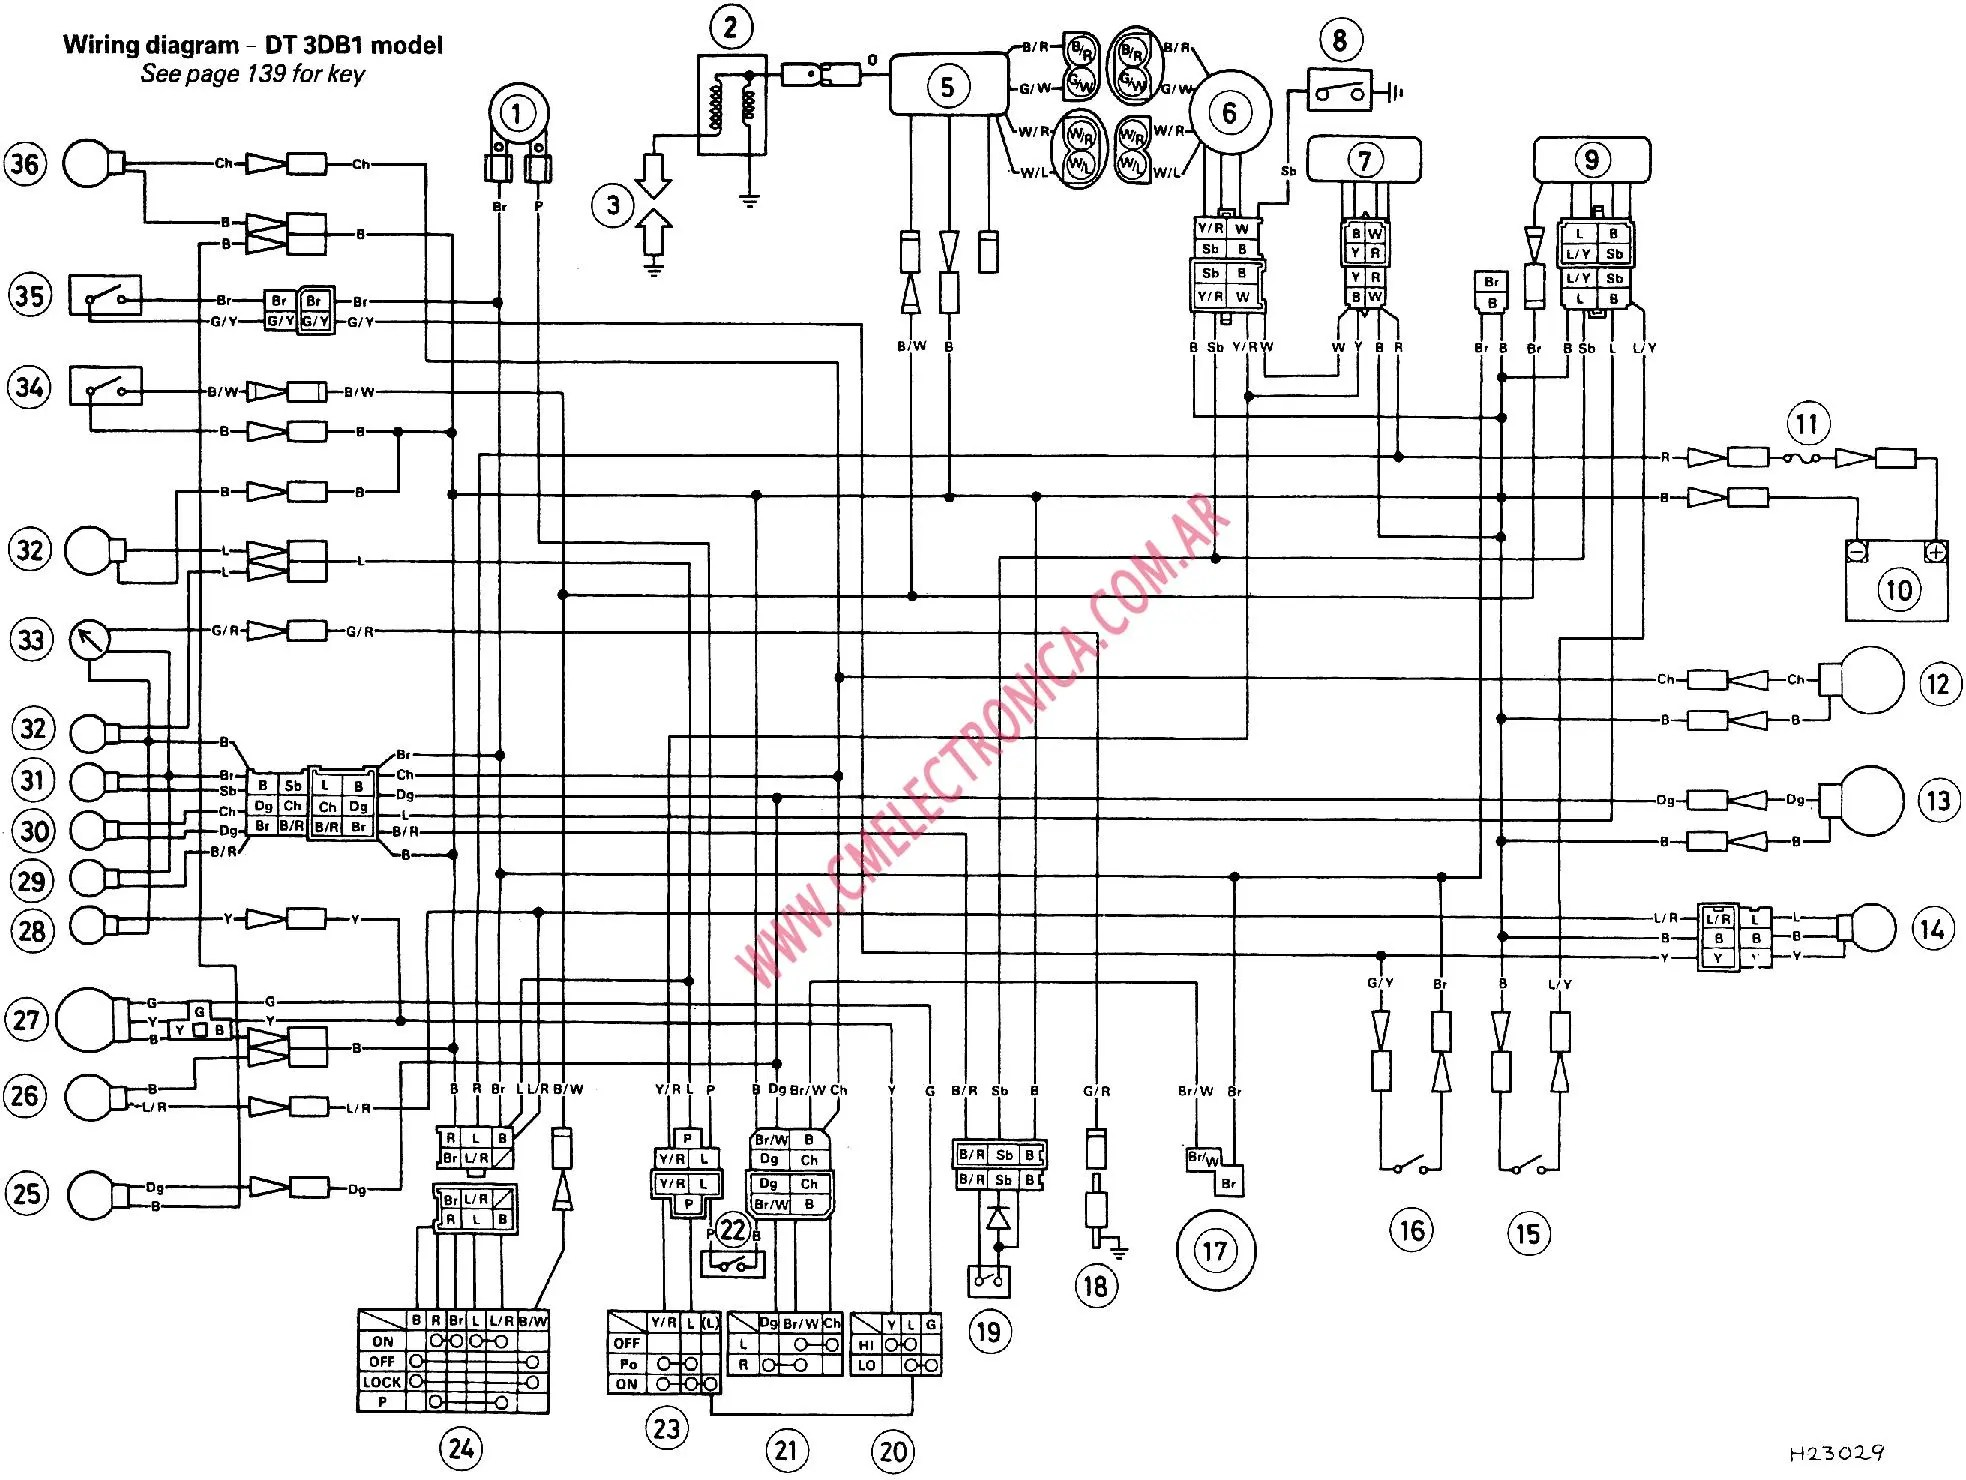 hight resolution of 1979 yamaha gt80 wiring diagram yamaha xt350 wiring 1980 yamaha xs650 wiring diagram 1980 yamaha xs650